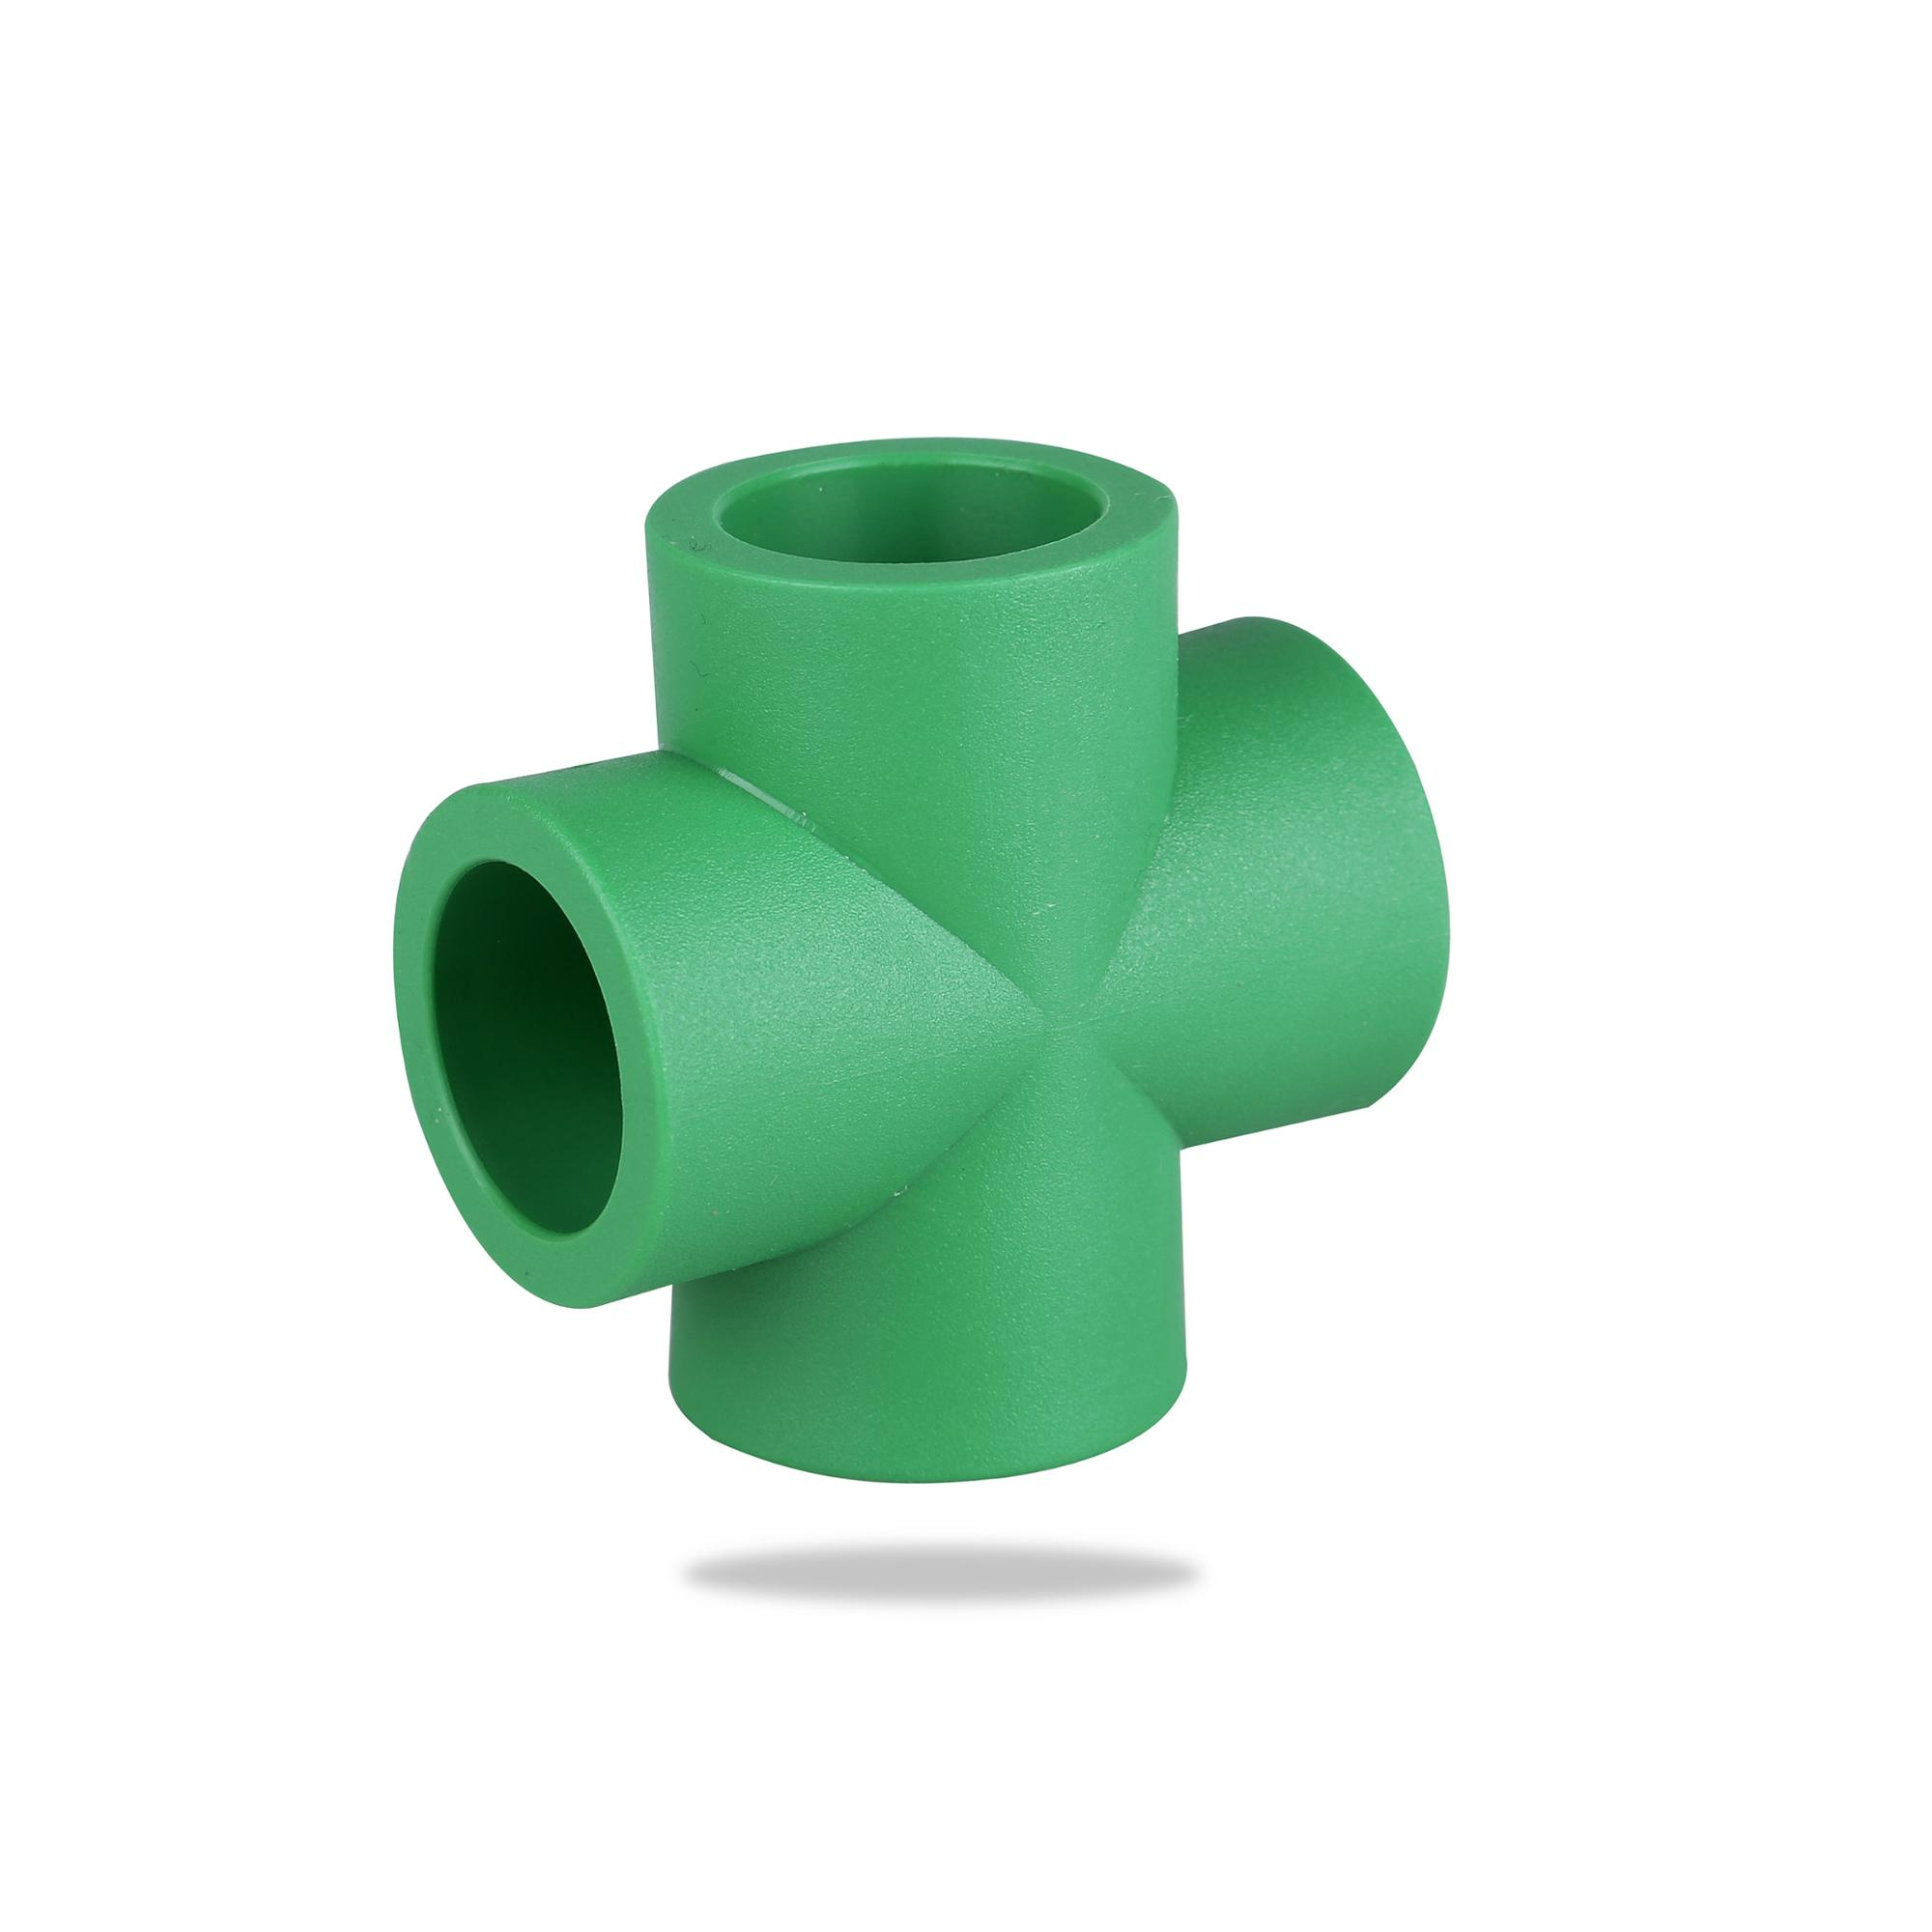 Factory Price Plastic Connectors PPR Pipe <strong>Fitting</strong> 4 Way PPR Cross <strong>fitting</strong>